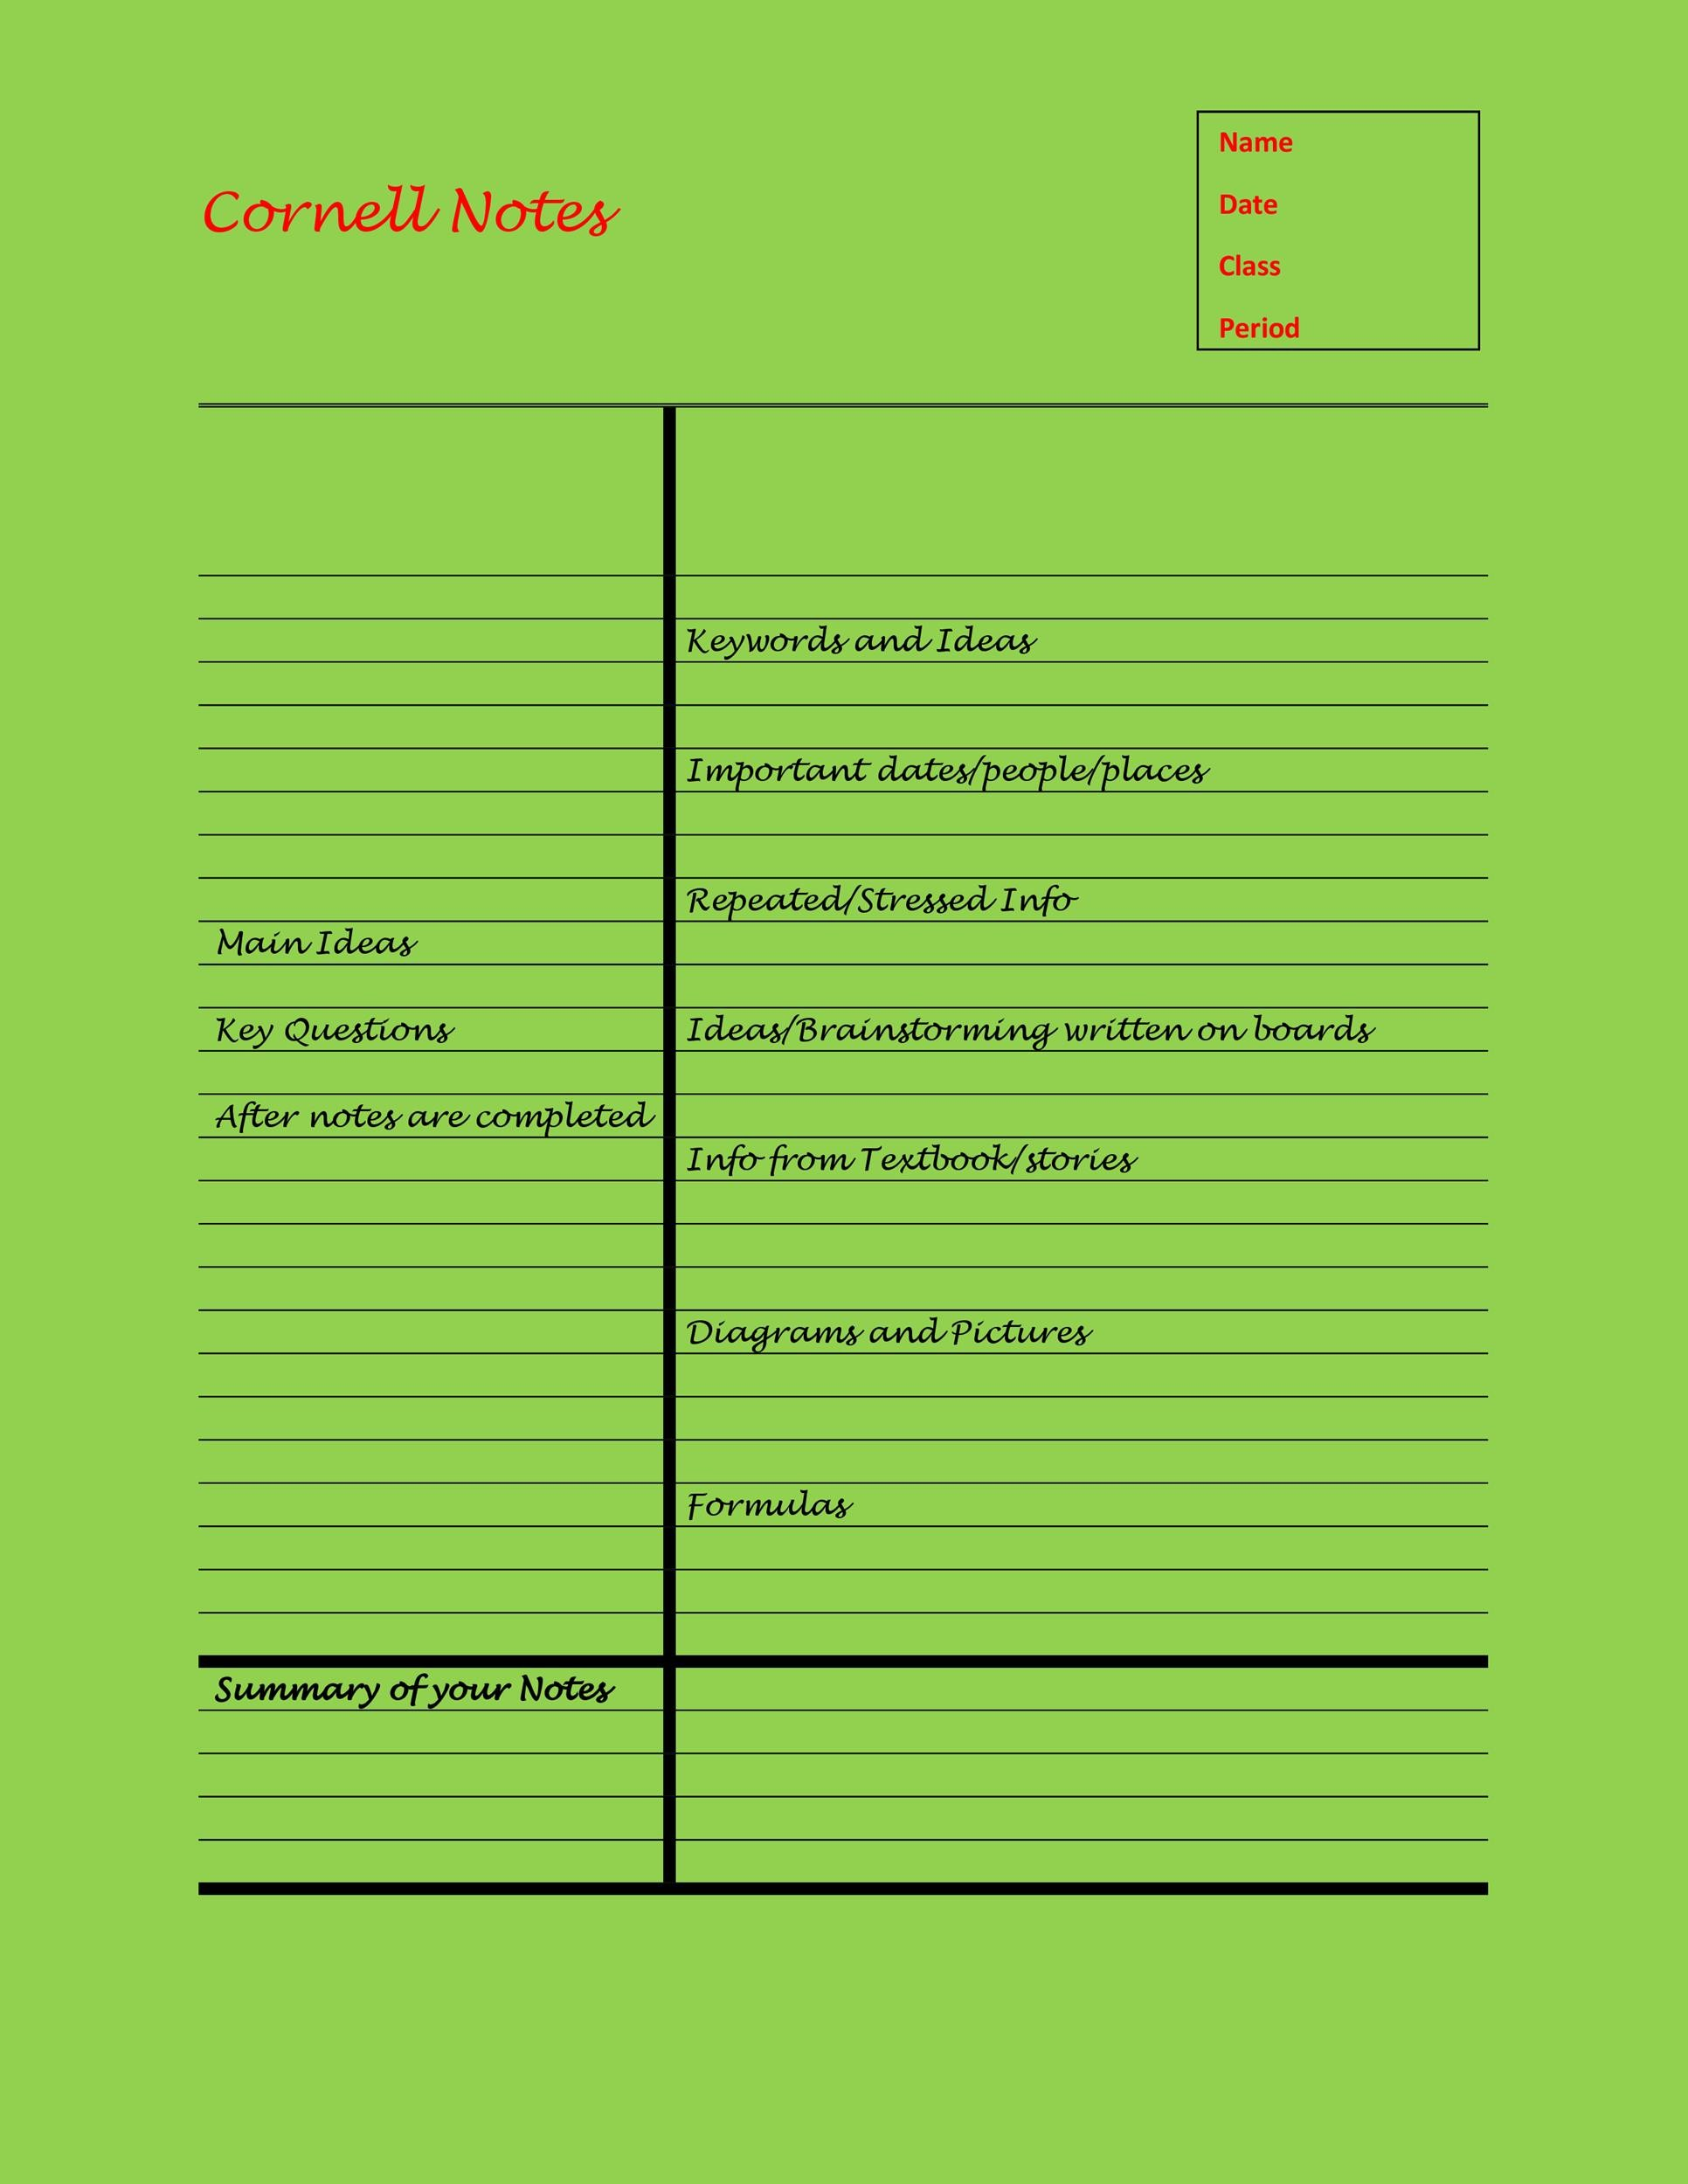 Free Cornell Notes Template 24